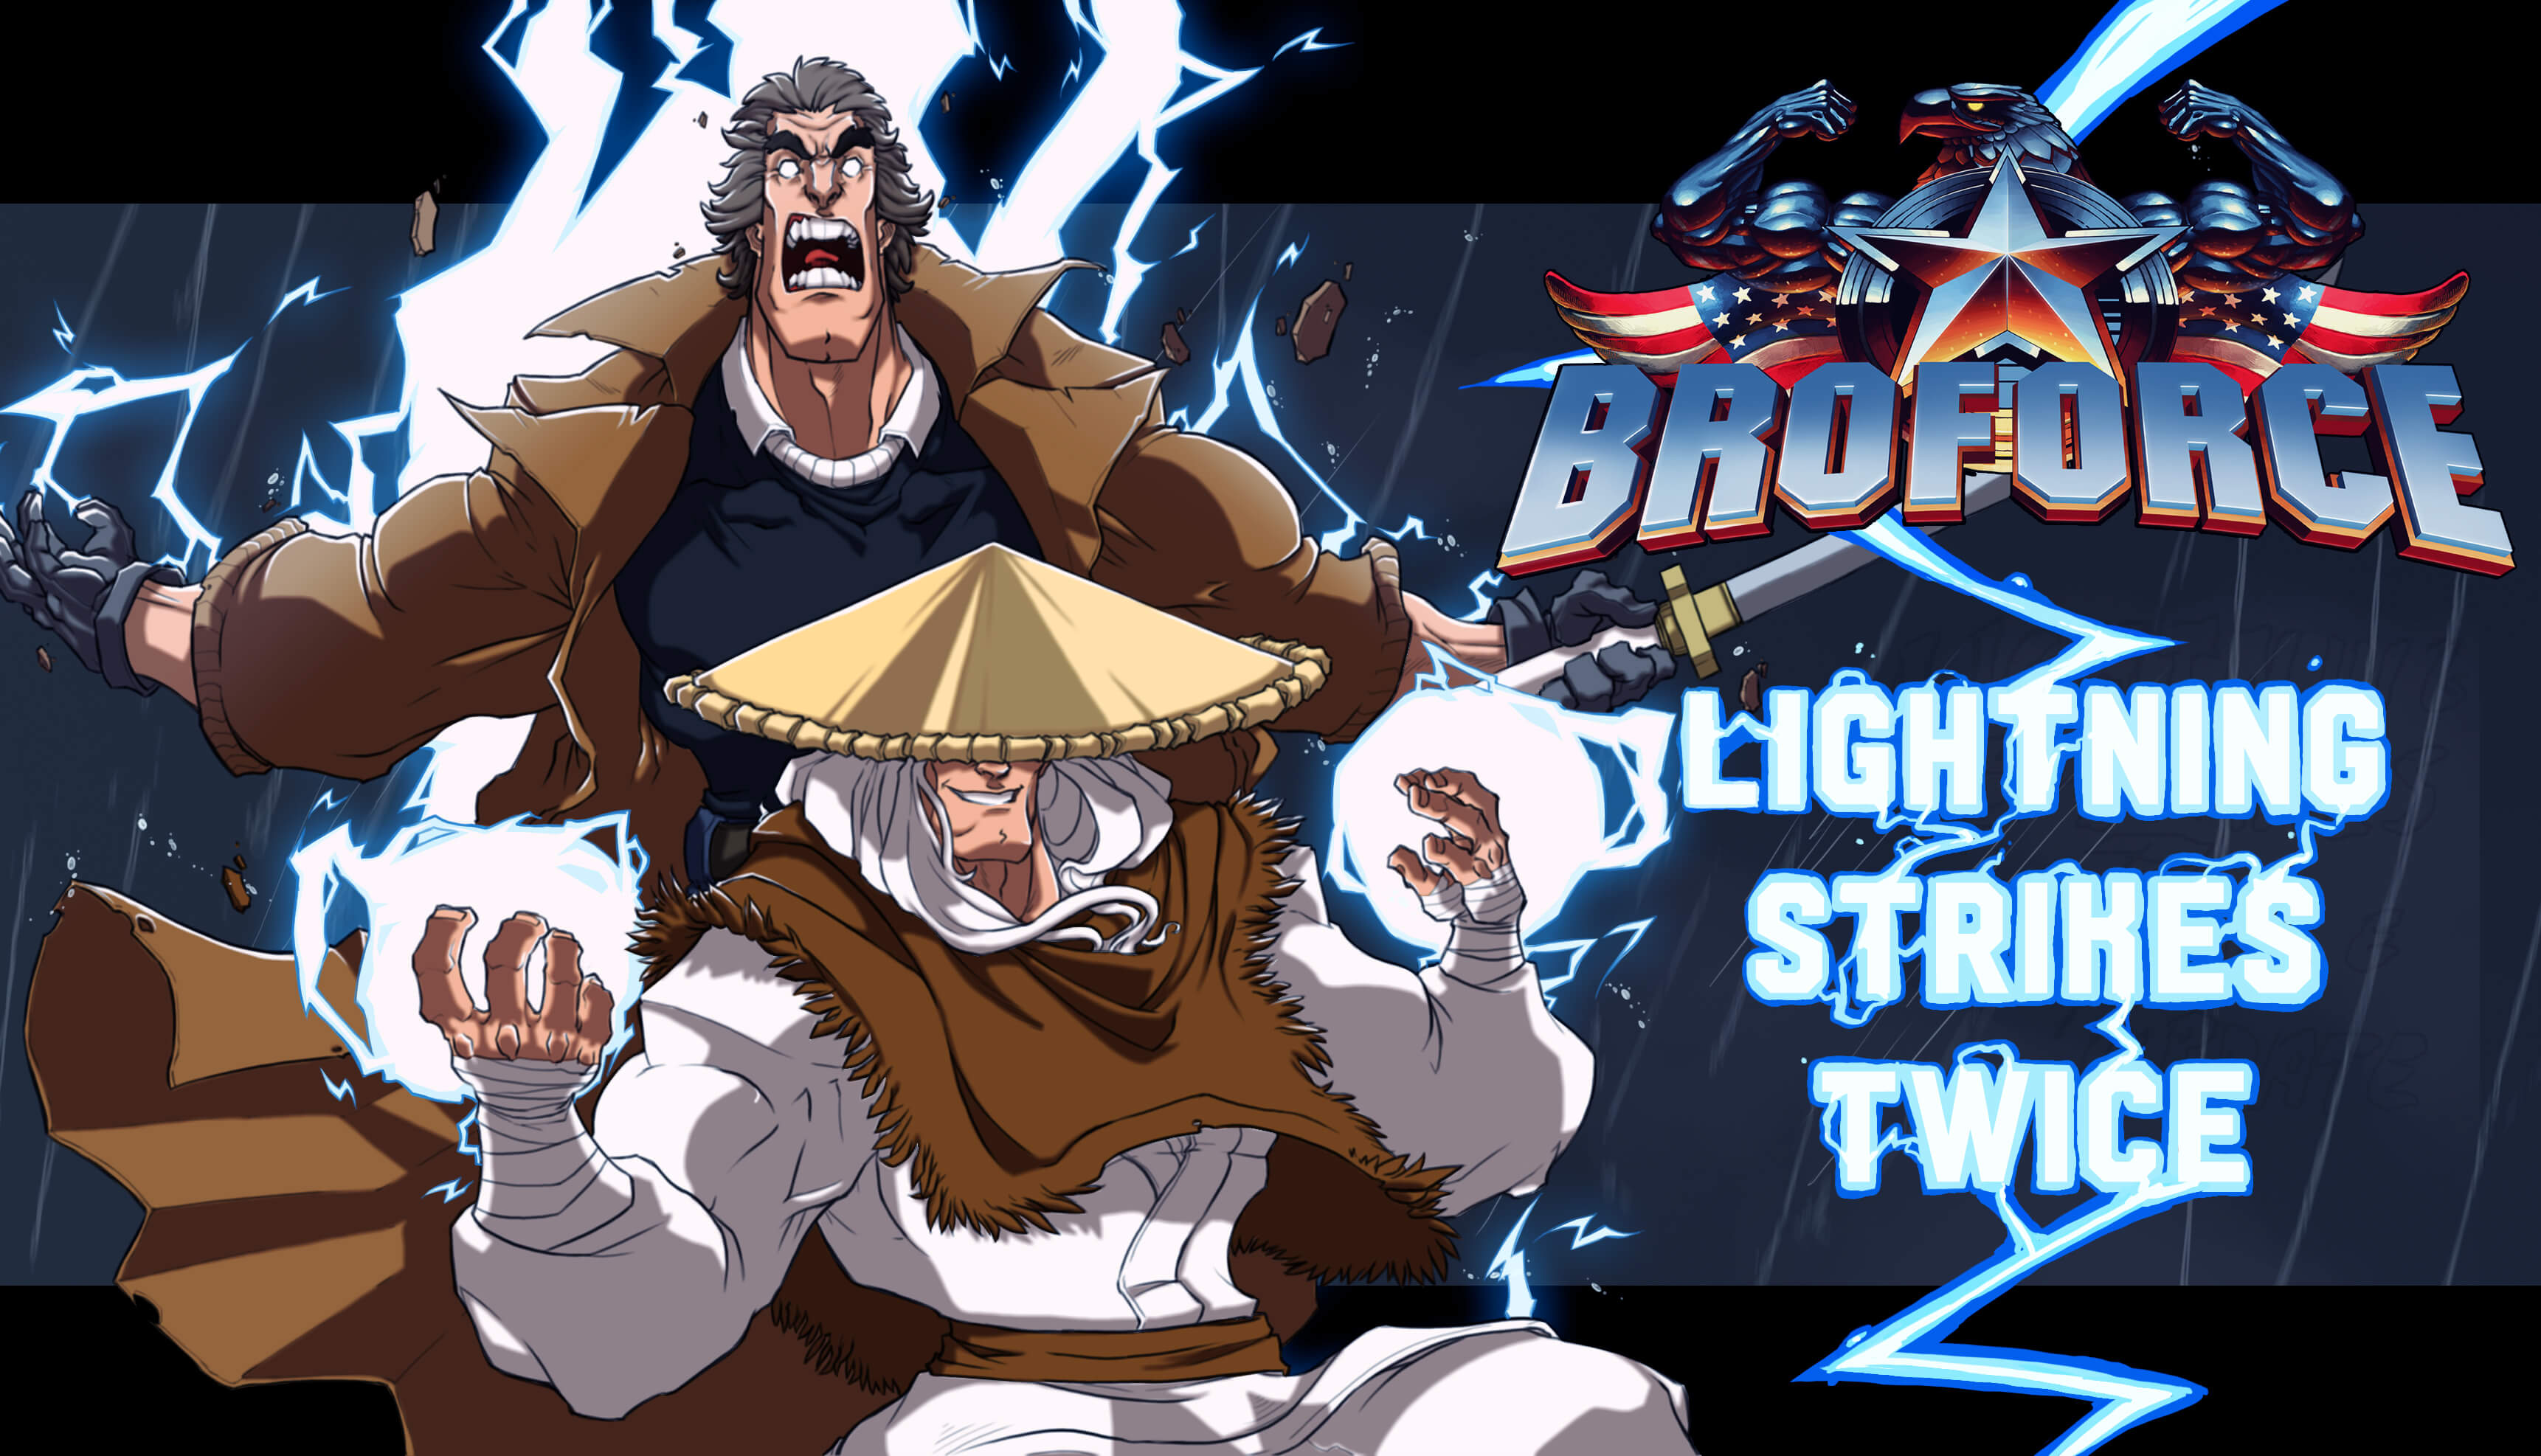 Broforce-Lightning-Strikes-Twice-Key-Art